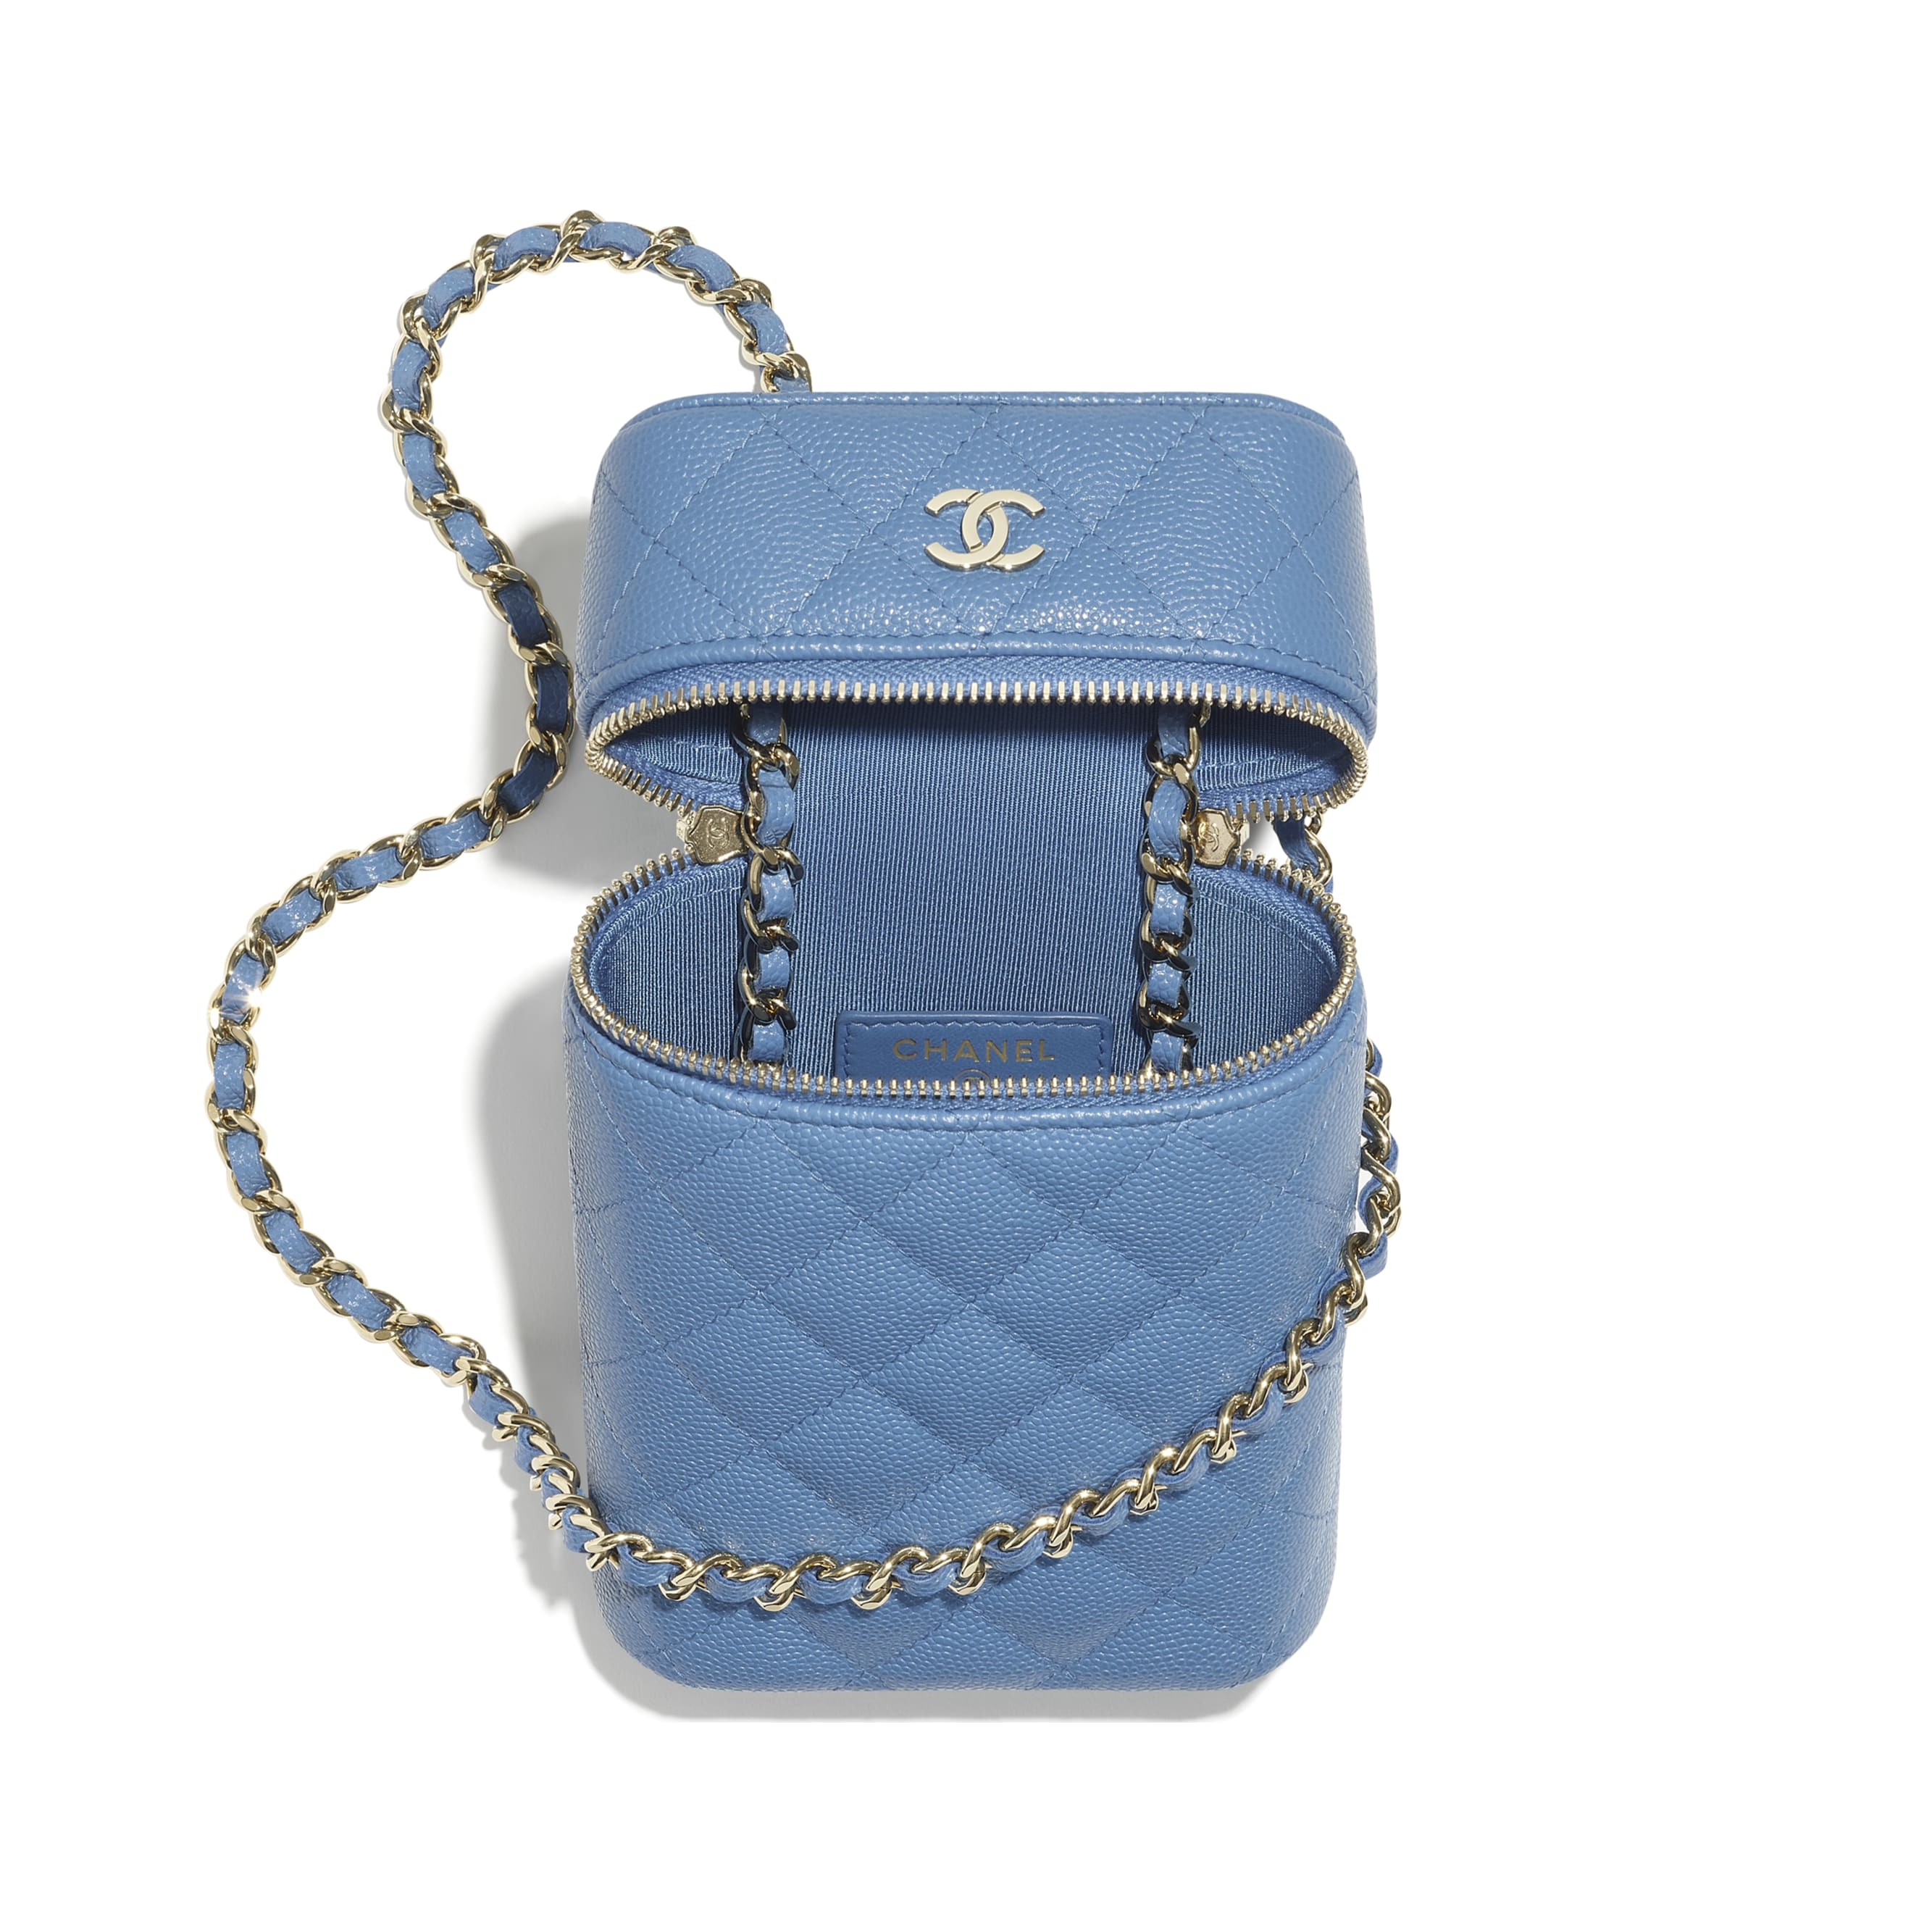 Classic Vanity Phone Holder with Chain - Blue - Grained Calfskin & Gold-Tone Metal - CHANEL - Alternative view - see standard sized version